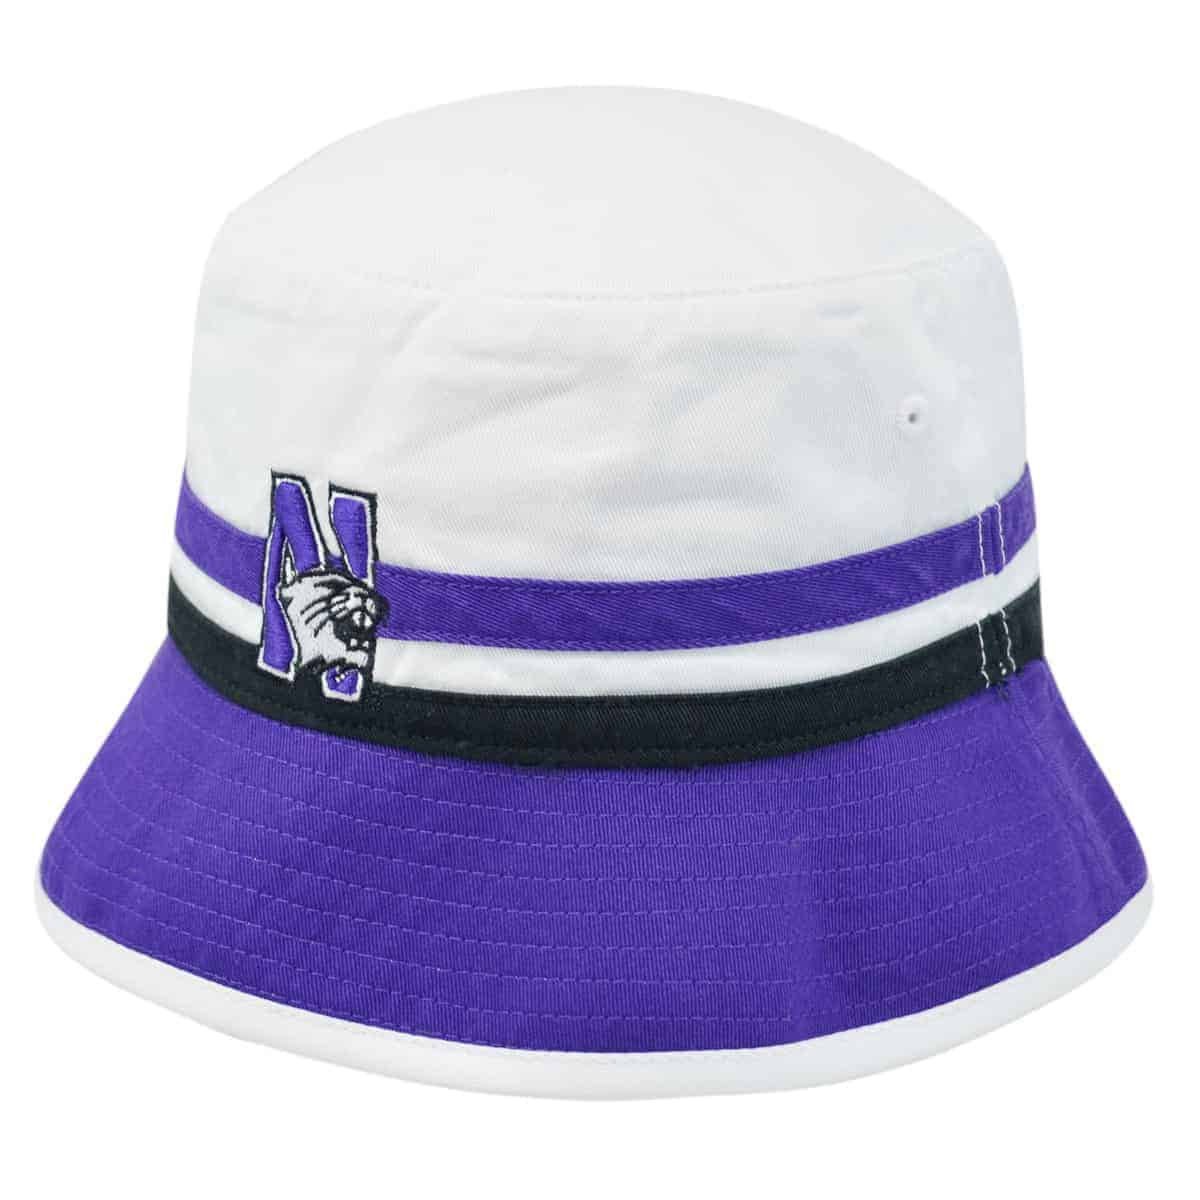 4bb38e35 Northwestern Wildcats White & Purple Floppy/Bucket Hat with N-Cat Design